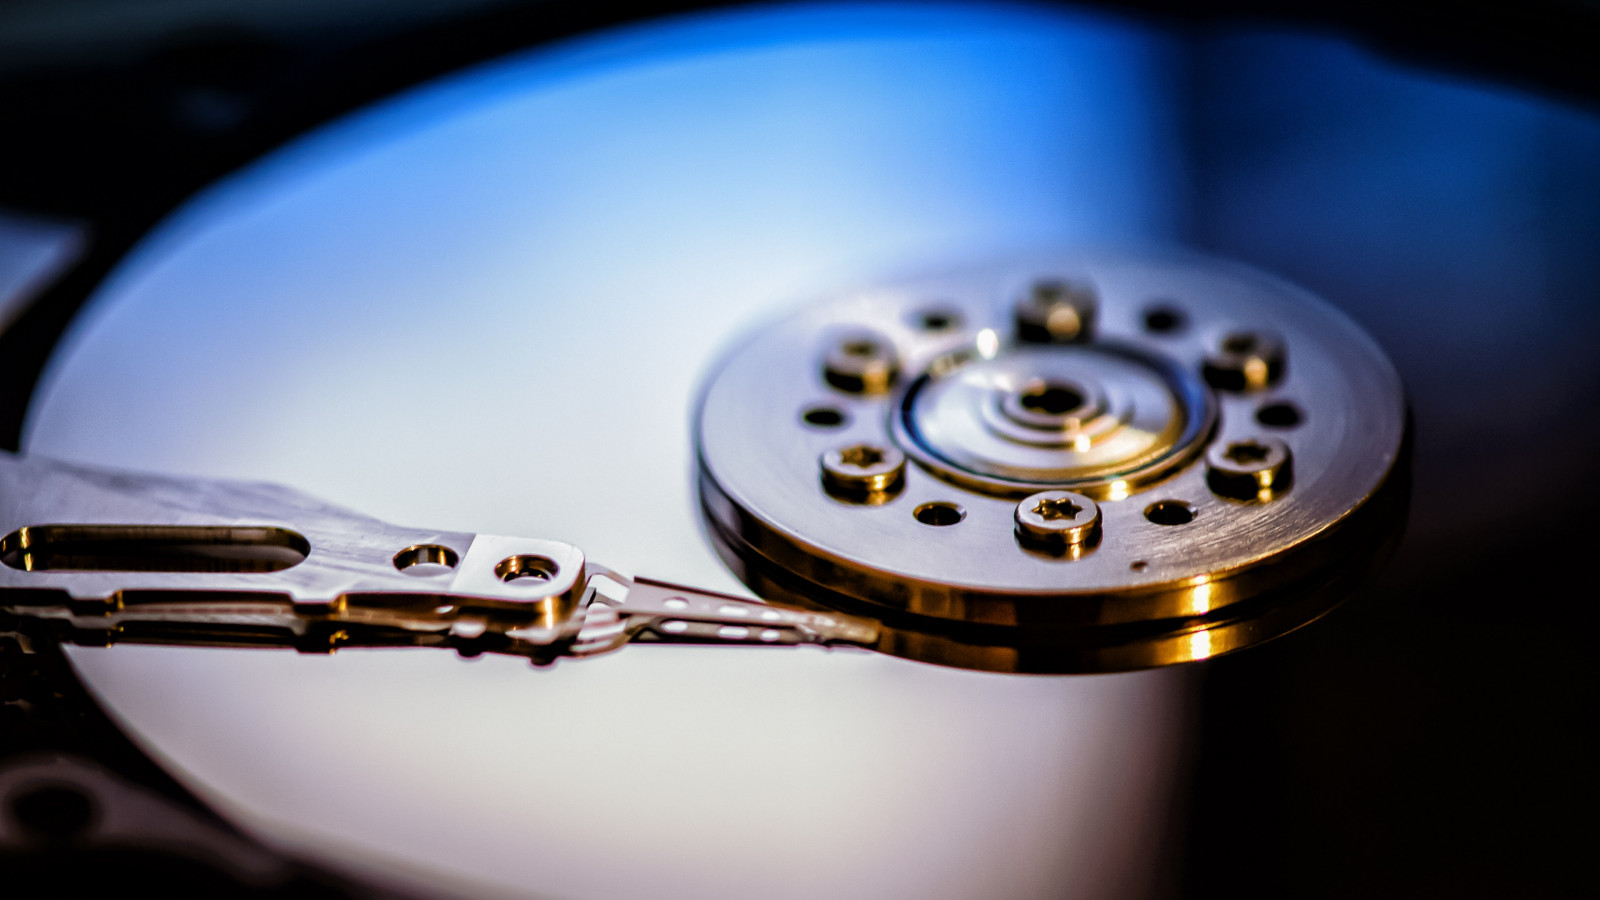 Hard disk drive wallpaper 1600x900